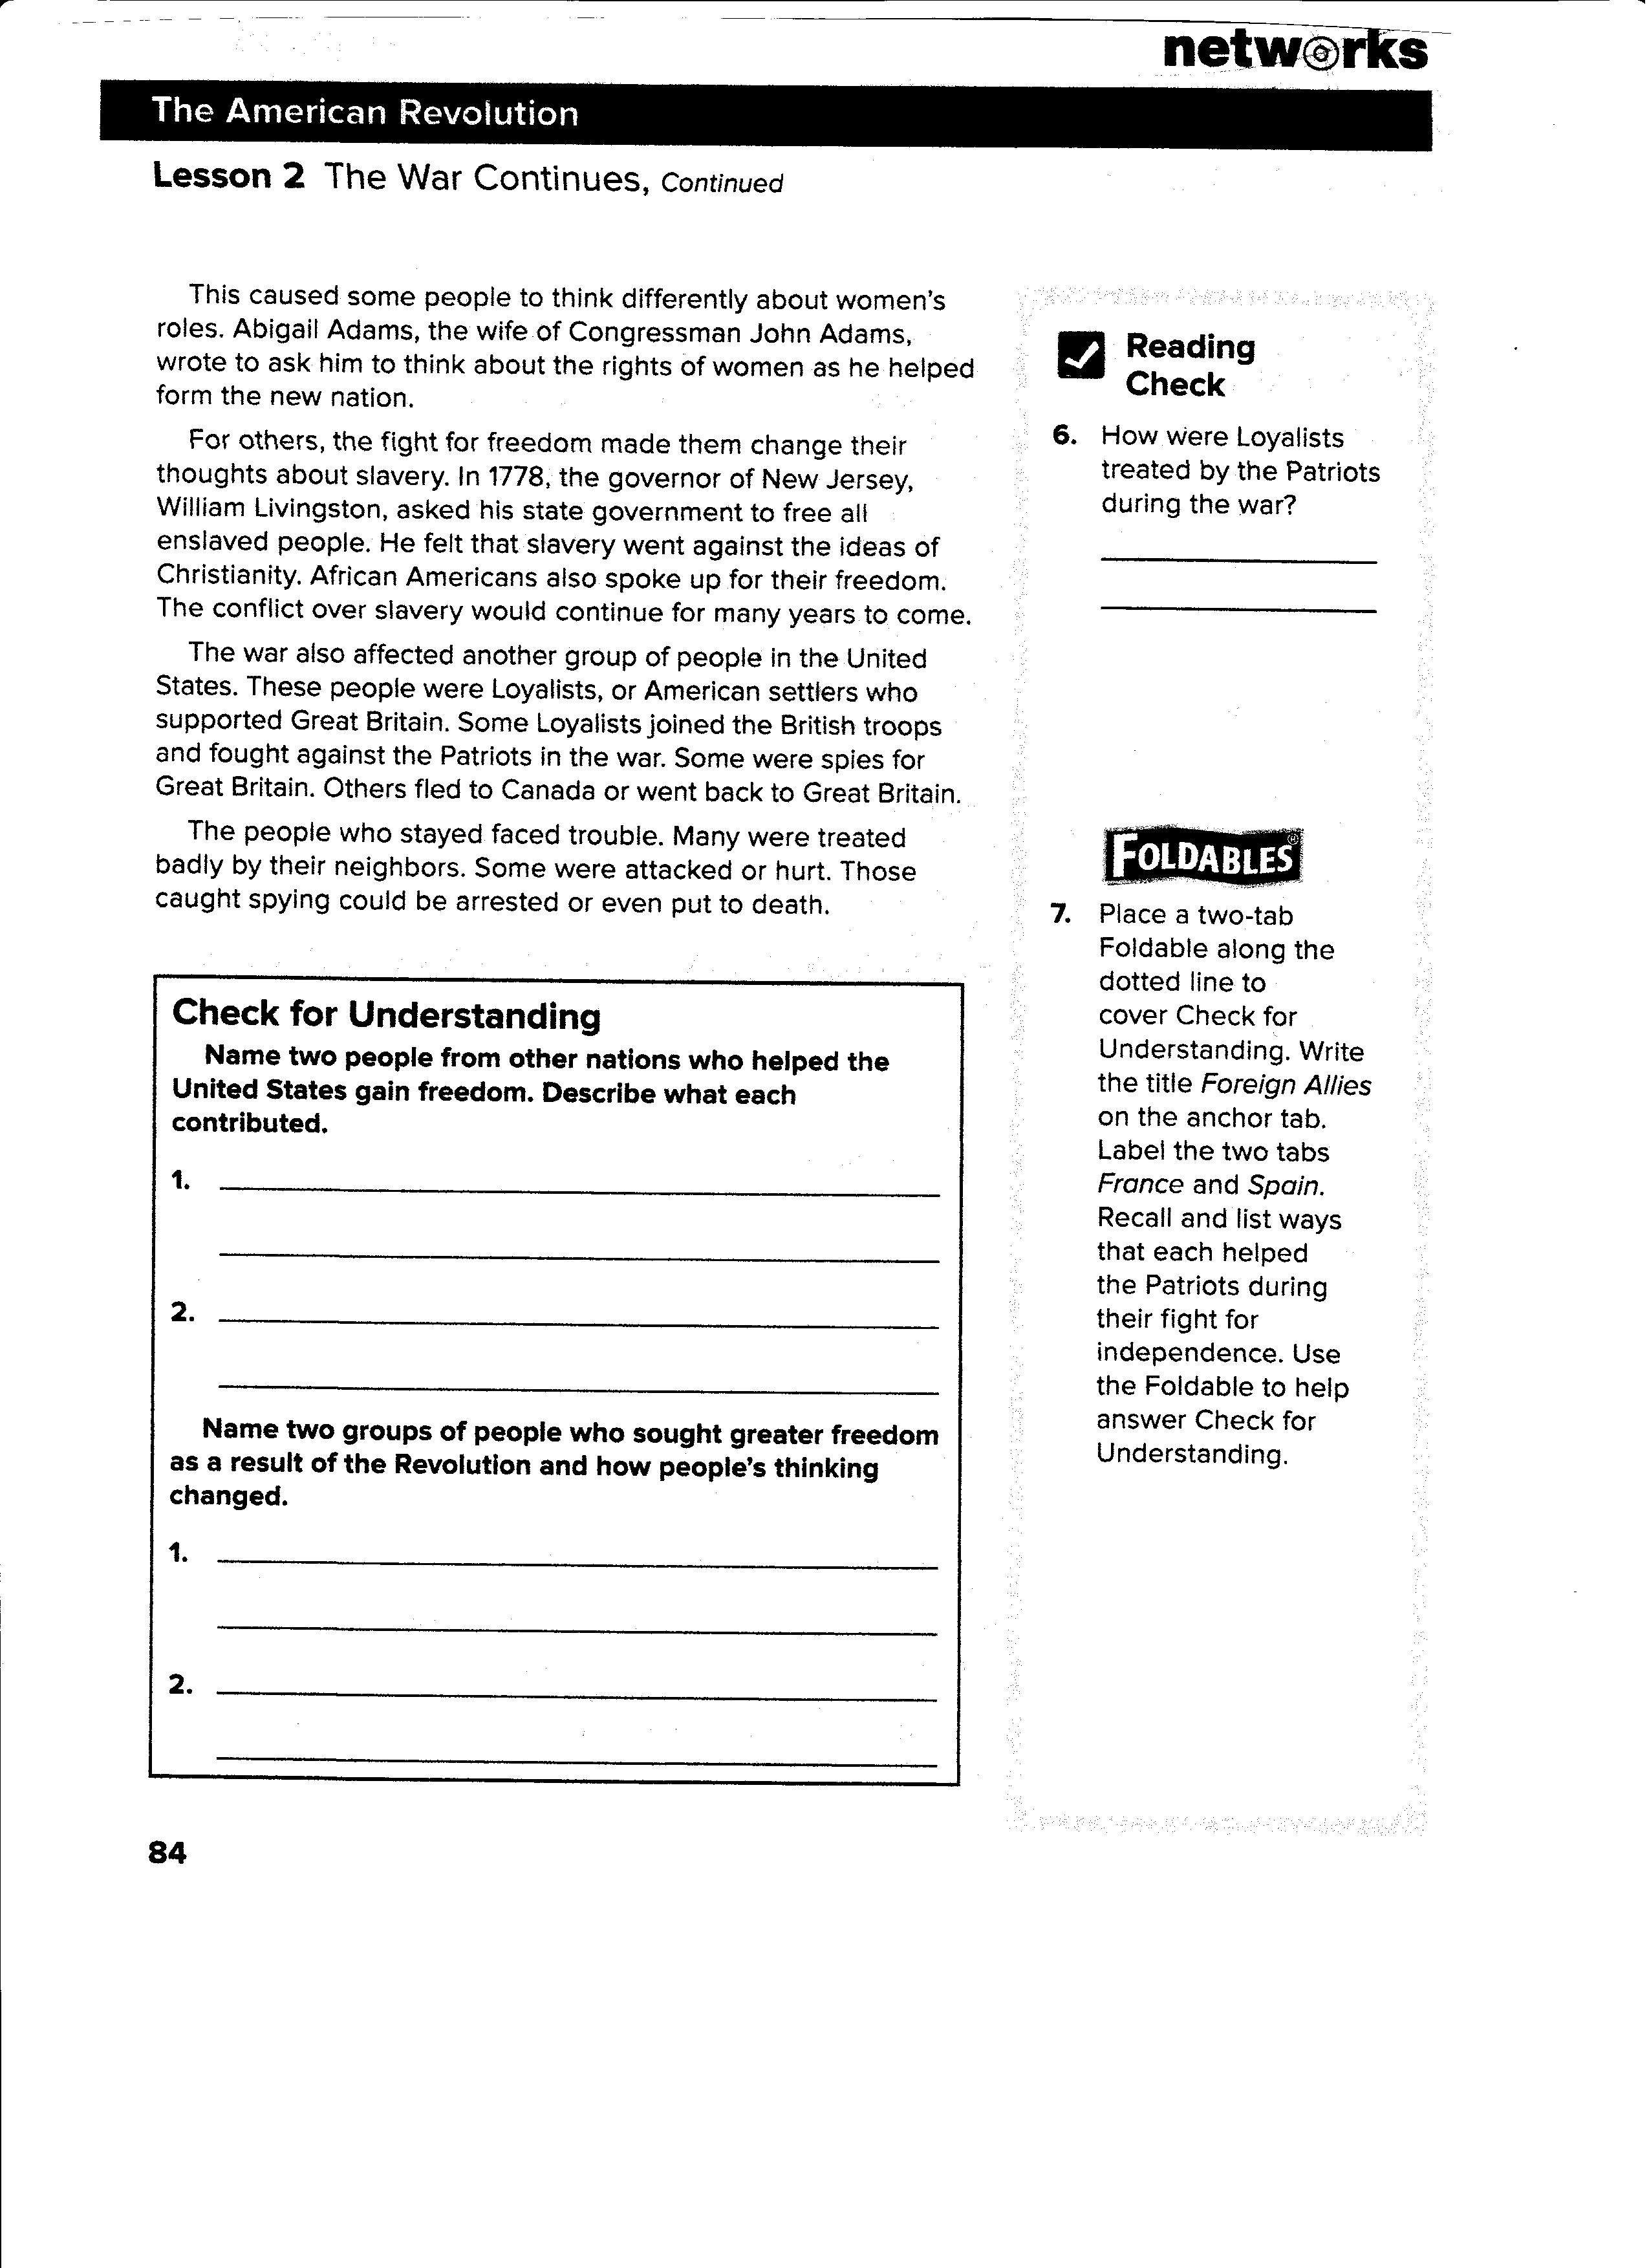 worksheet The Kansas Nebraska Act Of 1854 Worksheet Answers obregon jose homework 2 hw read lesson 2the war continues 4the final years by monday page 82 83